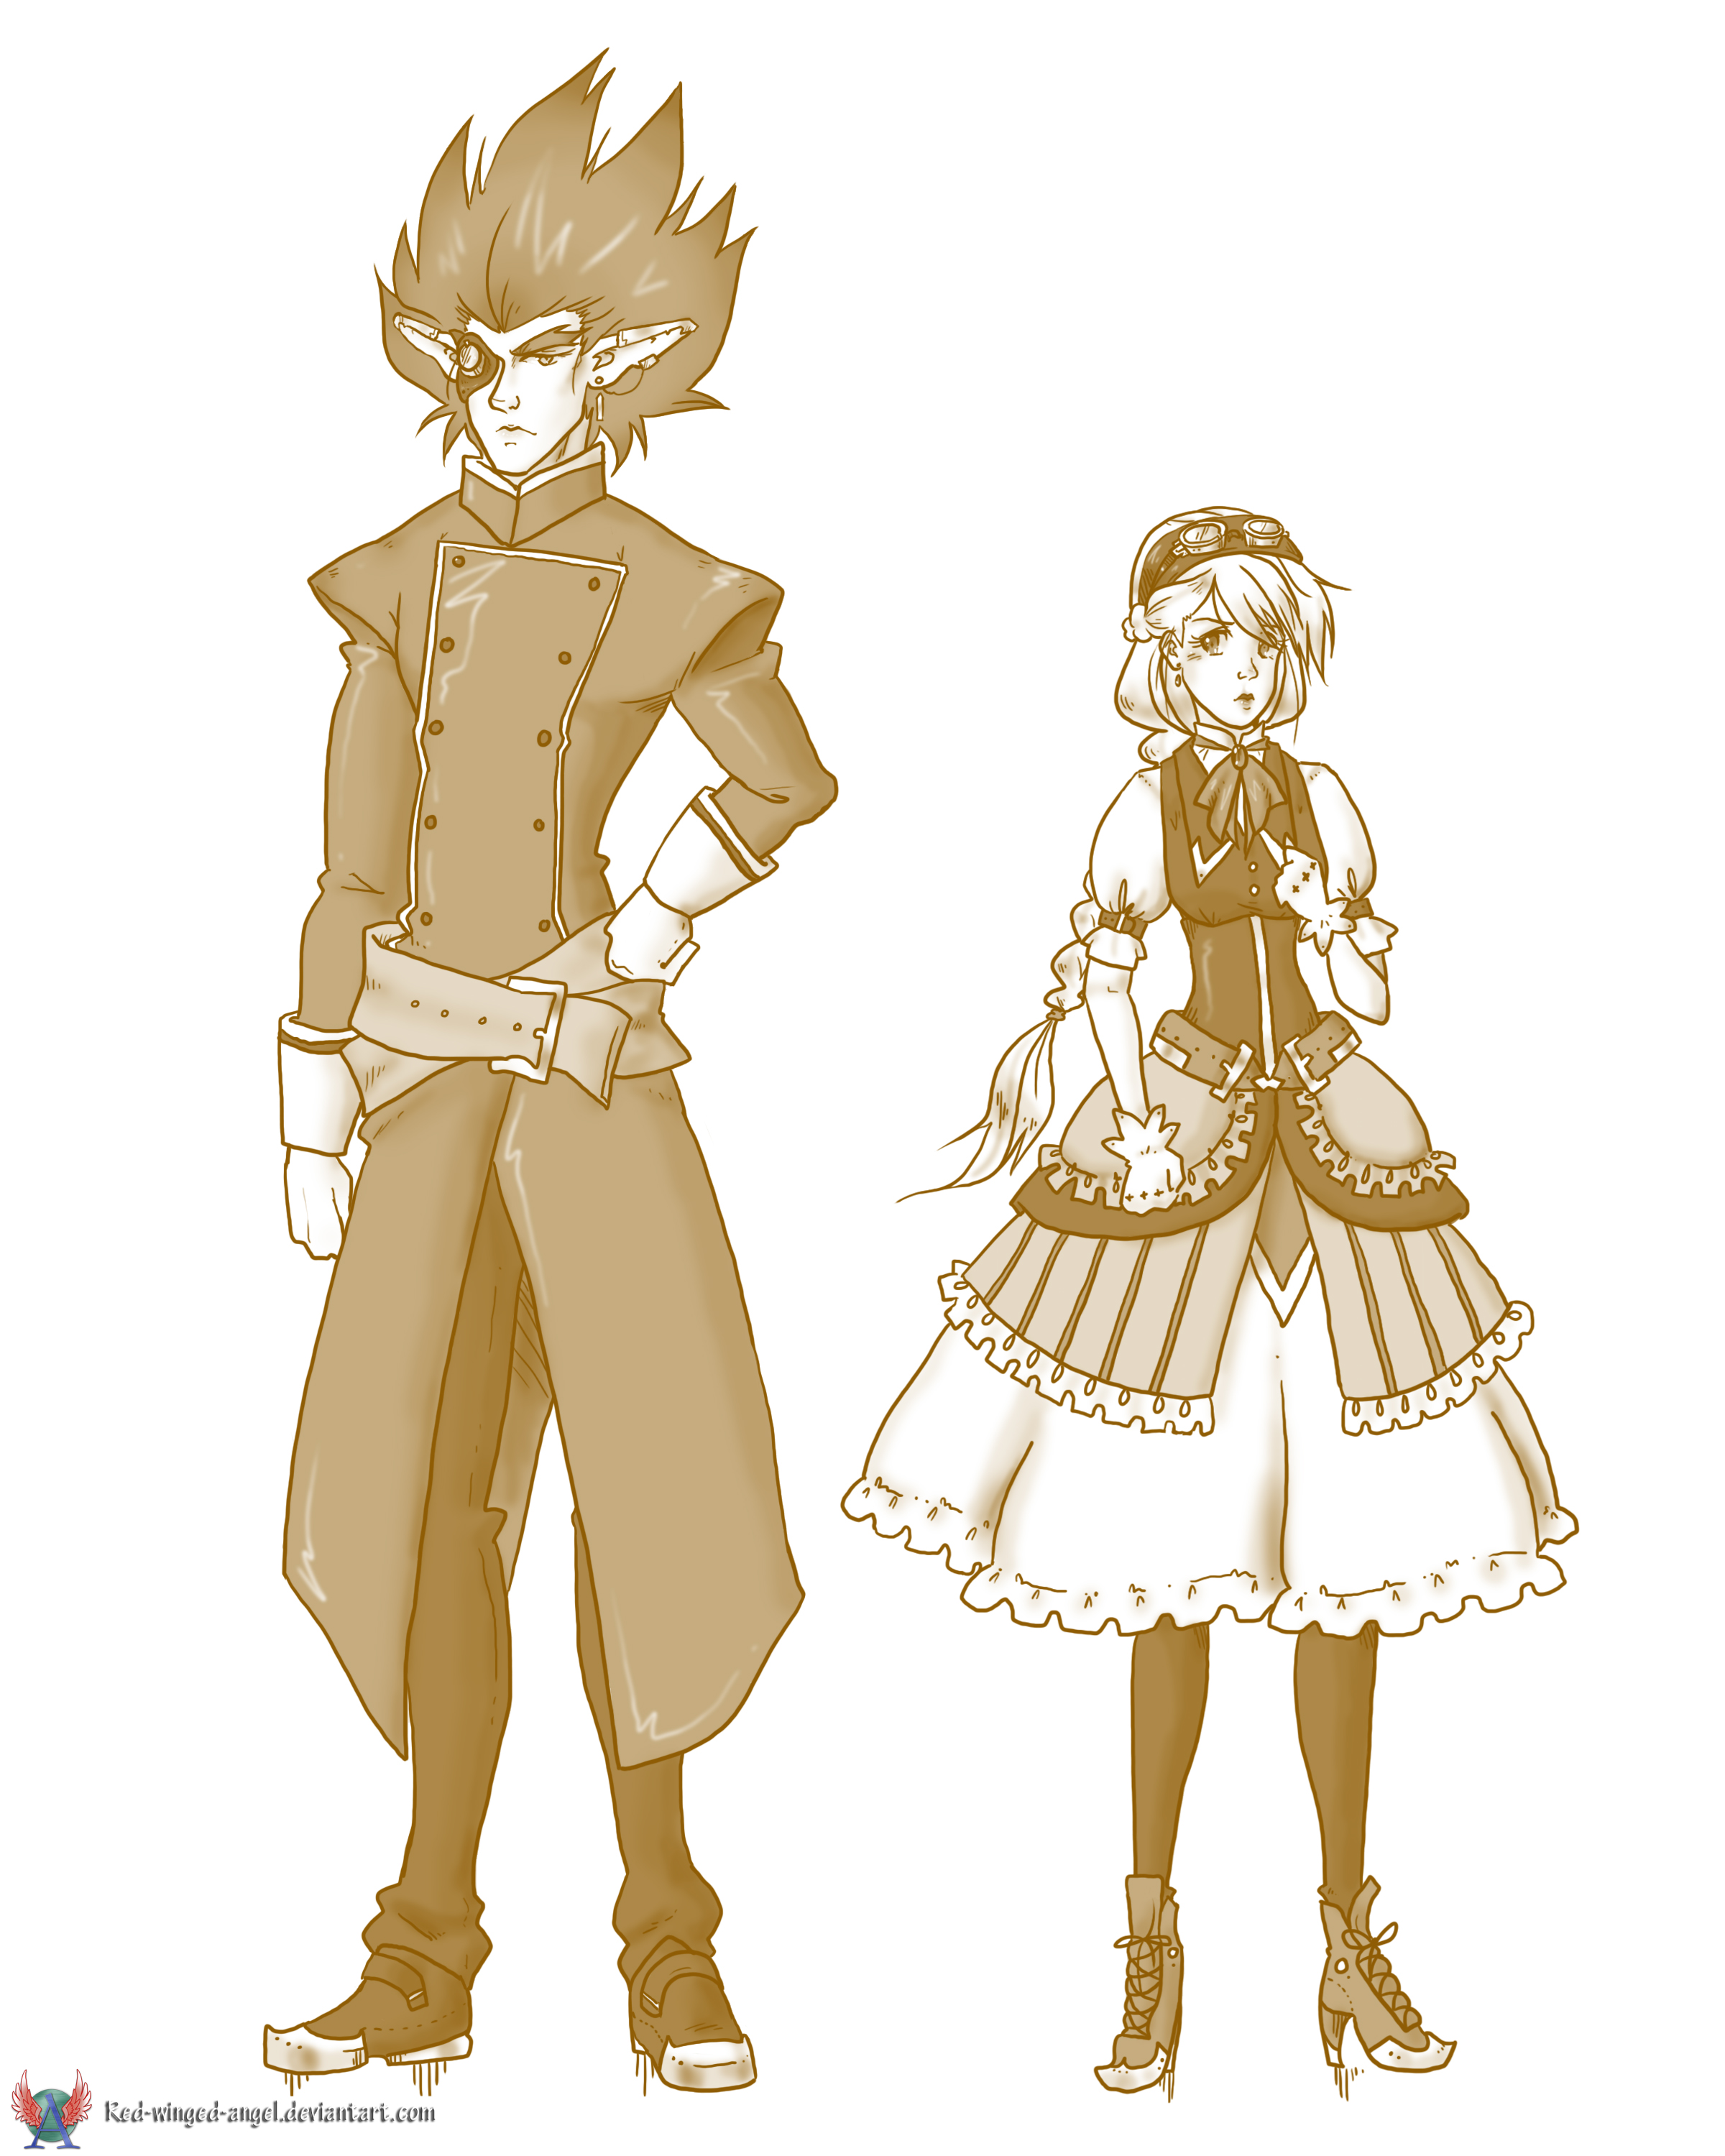 Otp 15 different clothing style steampunk by red winged angel on deviantart Different fashion style groups